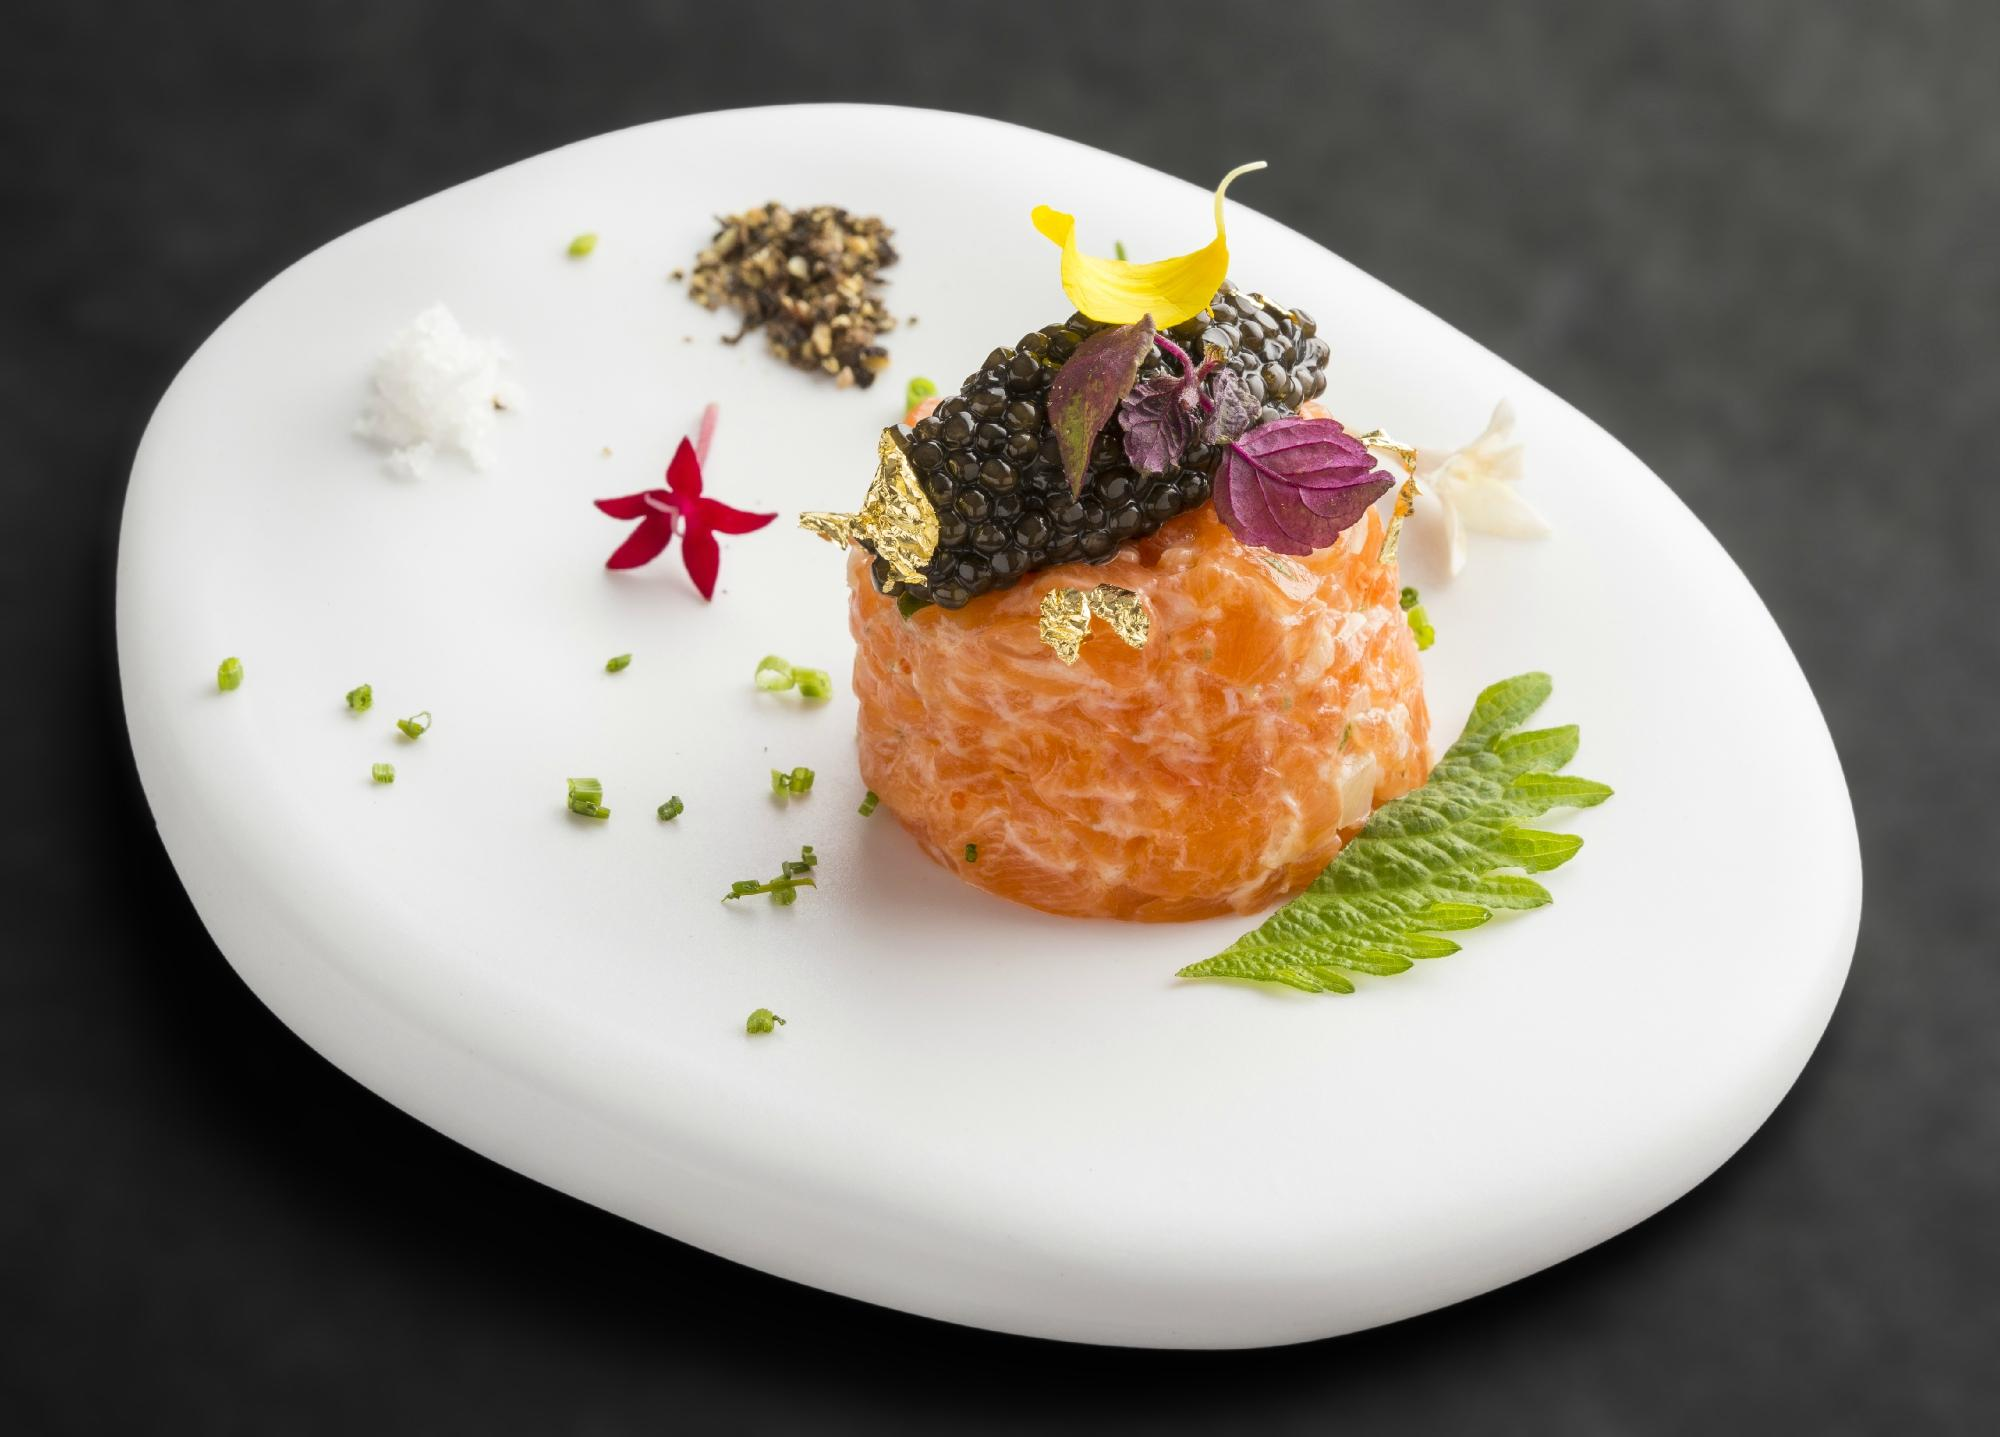 Course served by the Chef Takeo Yamazaki at the restaurant Yoshi